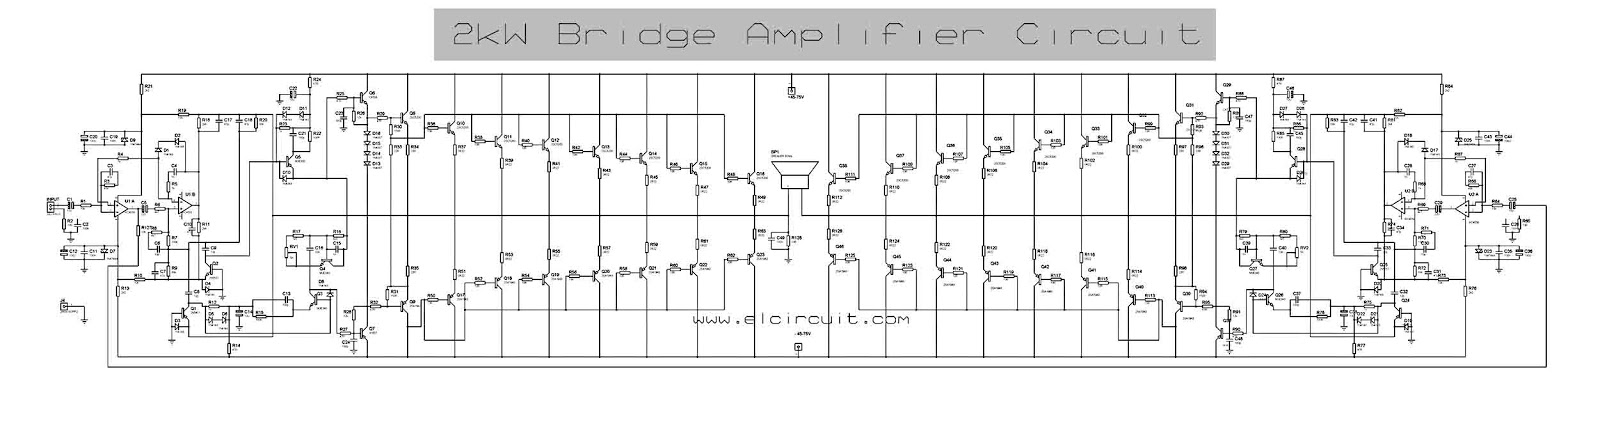 Fine 2Kw Amplifier Circuits Wiring Schematic Diagram 98 Beamsys Co Wiring Cloud Rineaidewilluminateatxorg